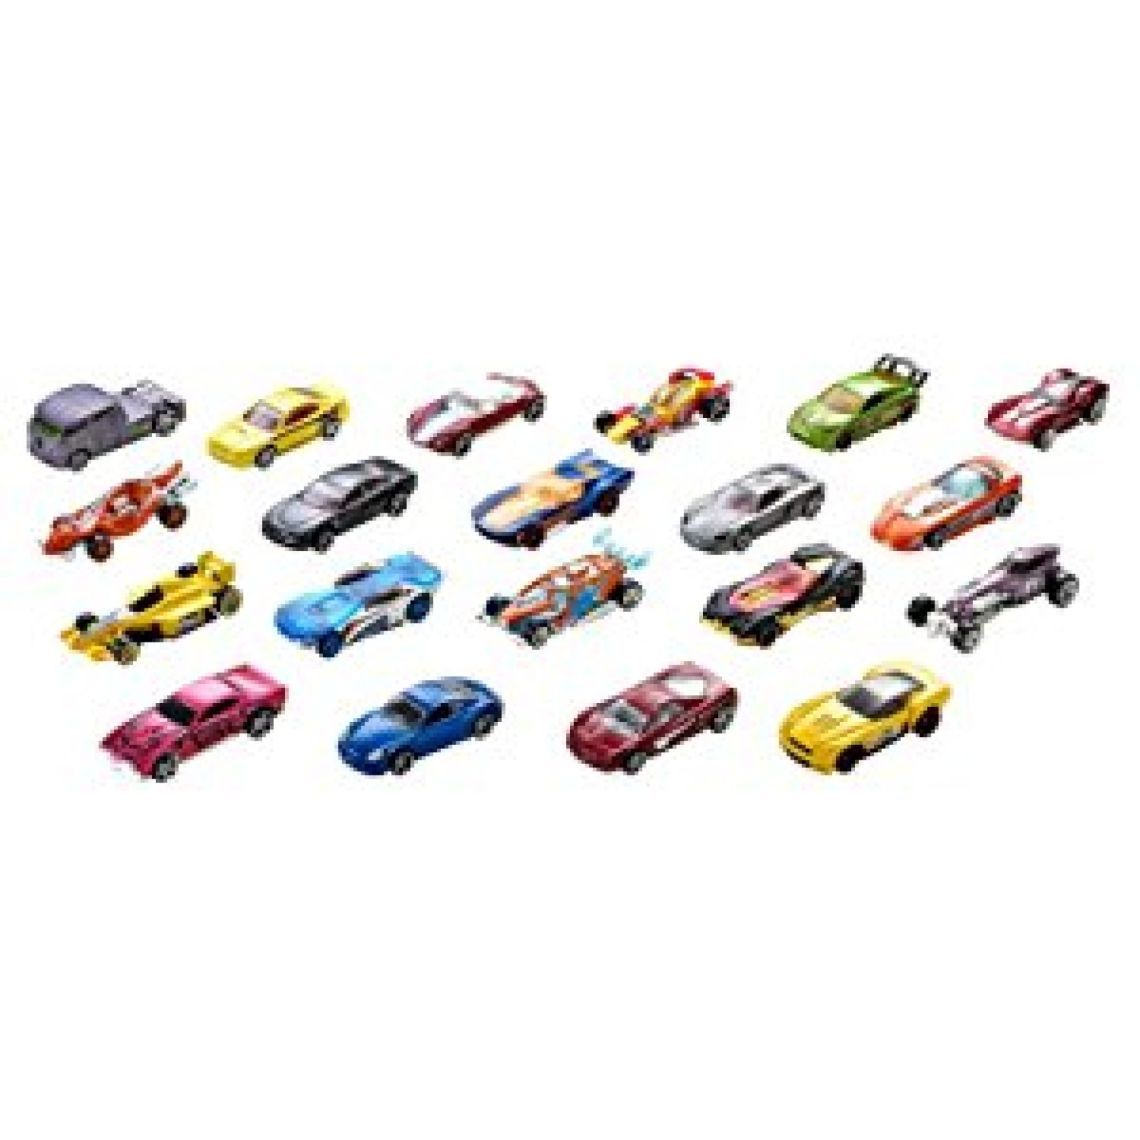 Amazon.com: Hot Wheels 20 Car Gift Pack (Styles May Vary): Hot Wheels: Toys & Games